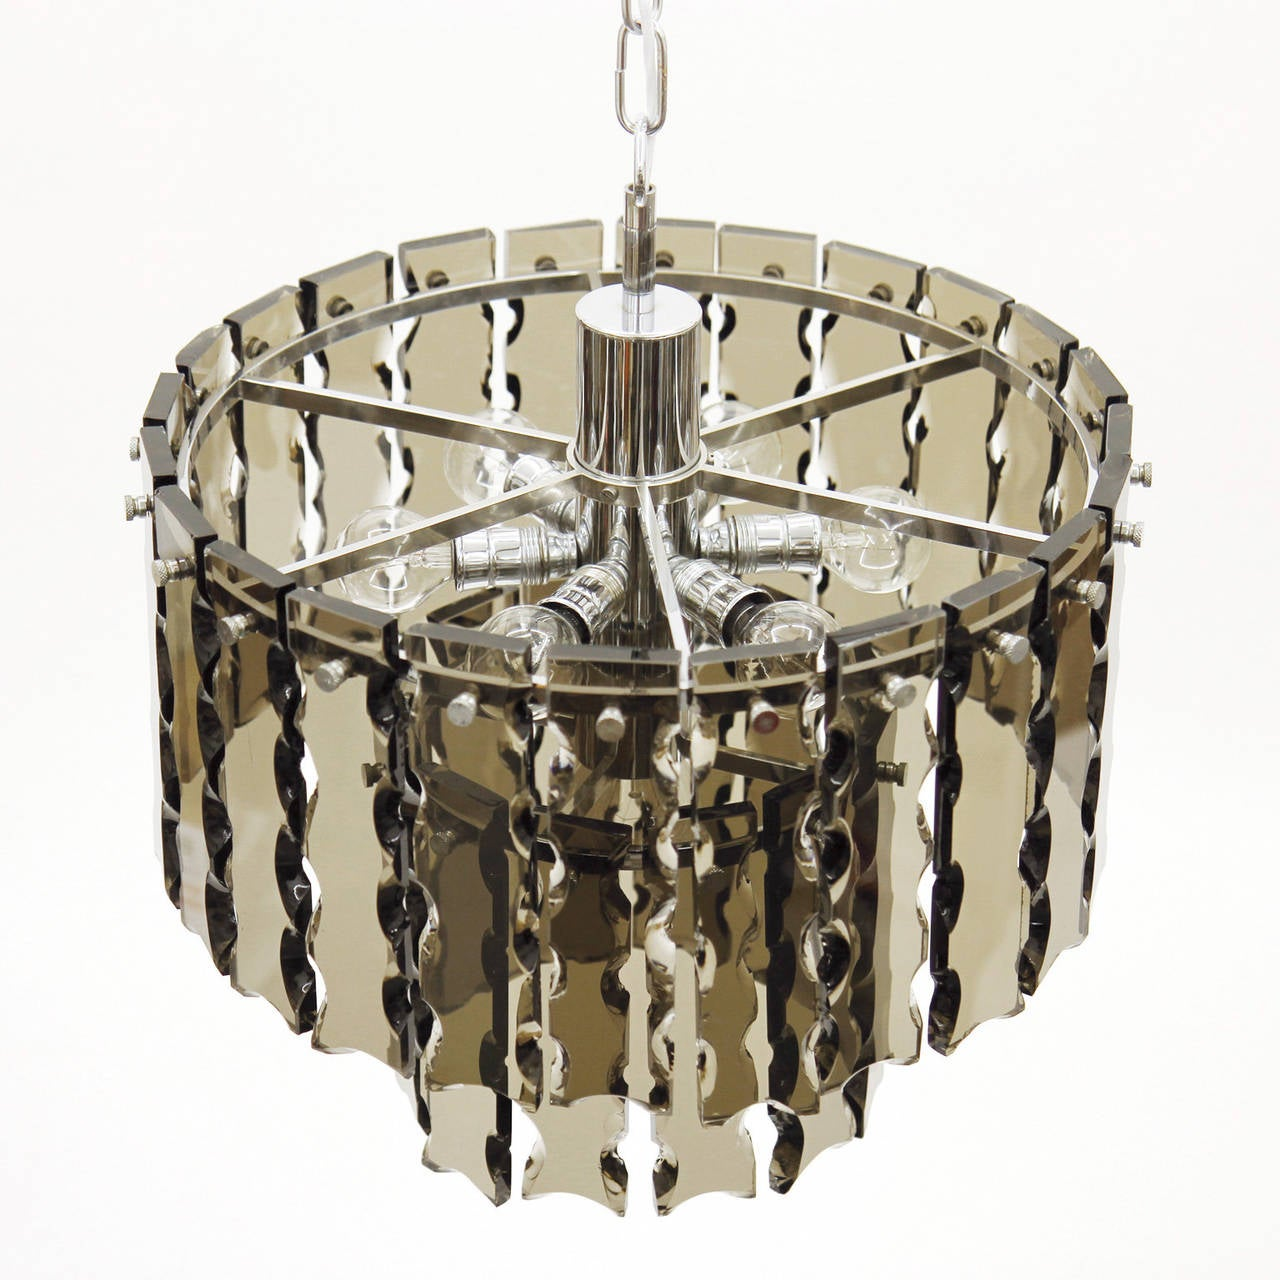 Fontana Arte Style Two-Tier Smoke Glass Chandelier 5